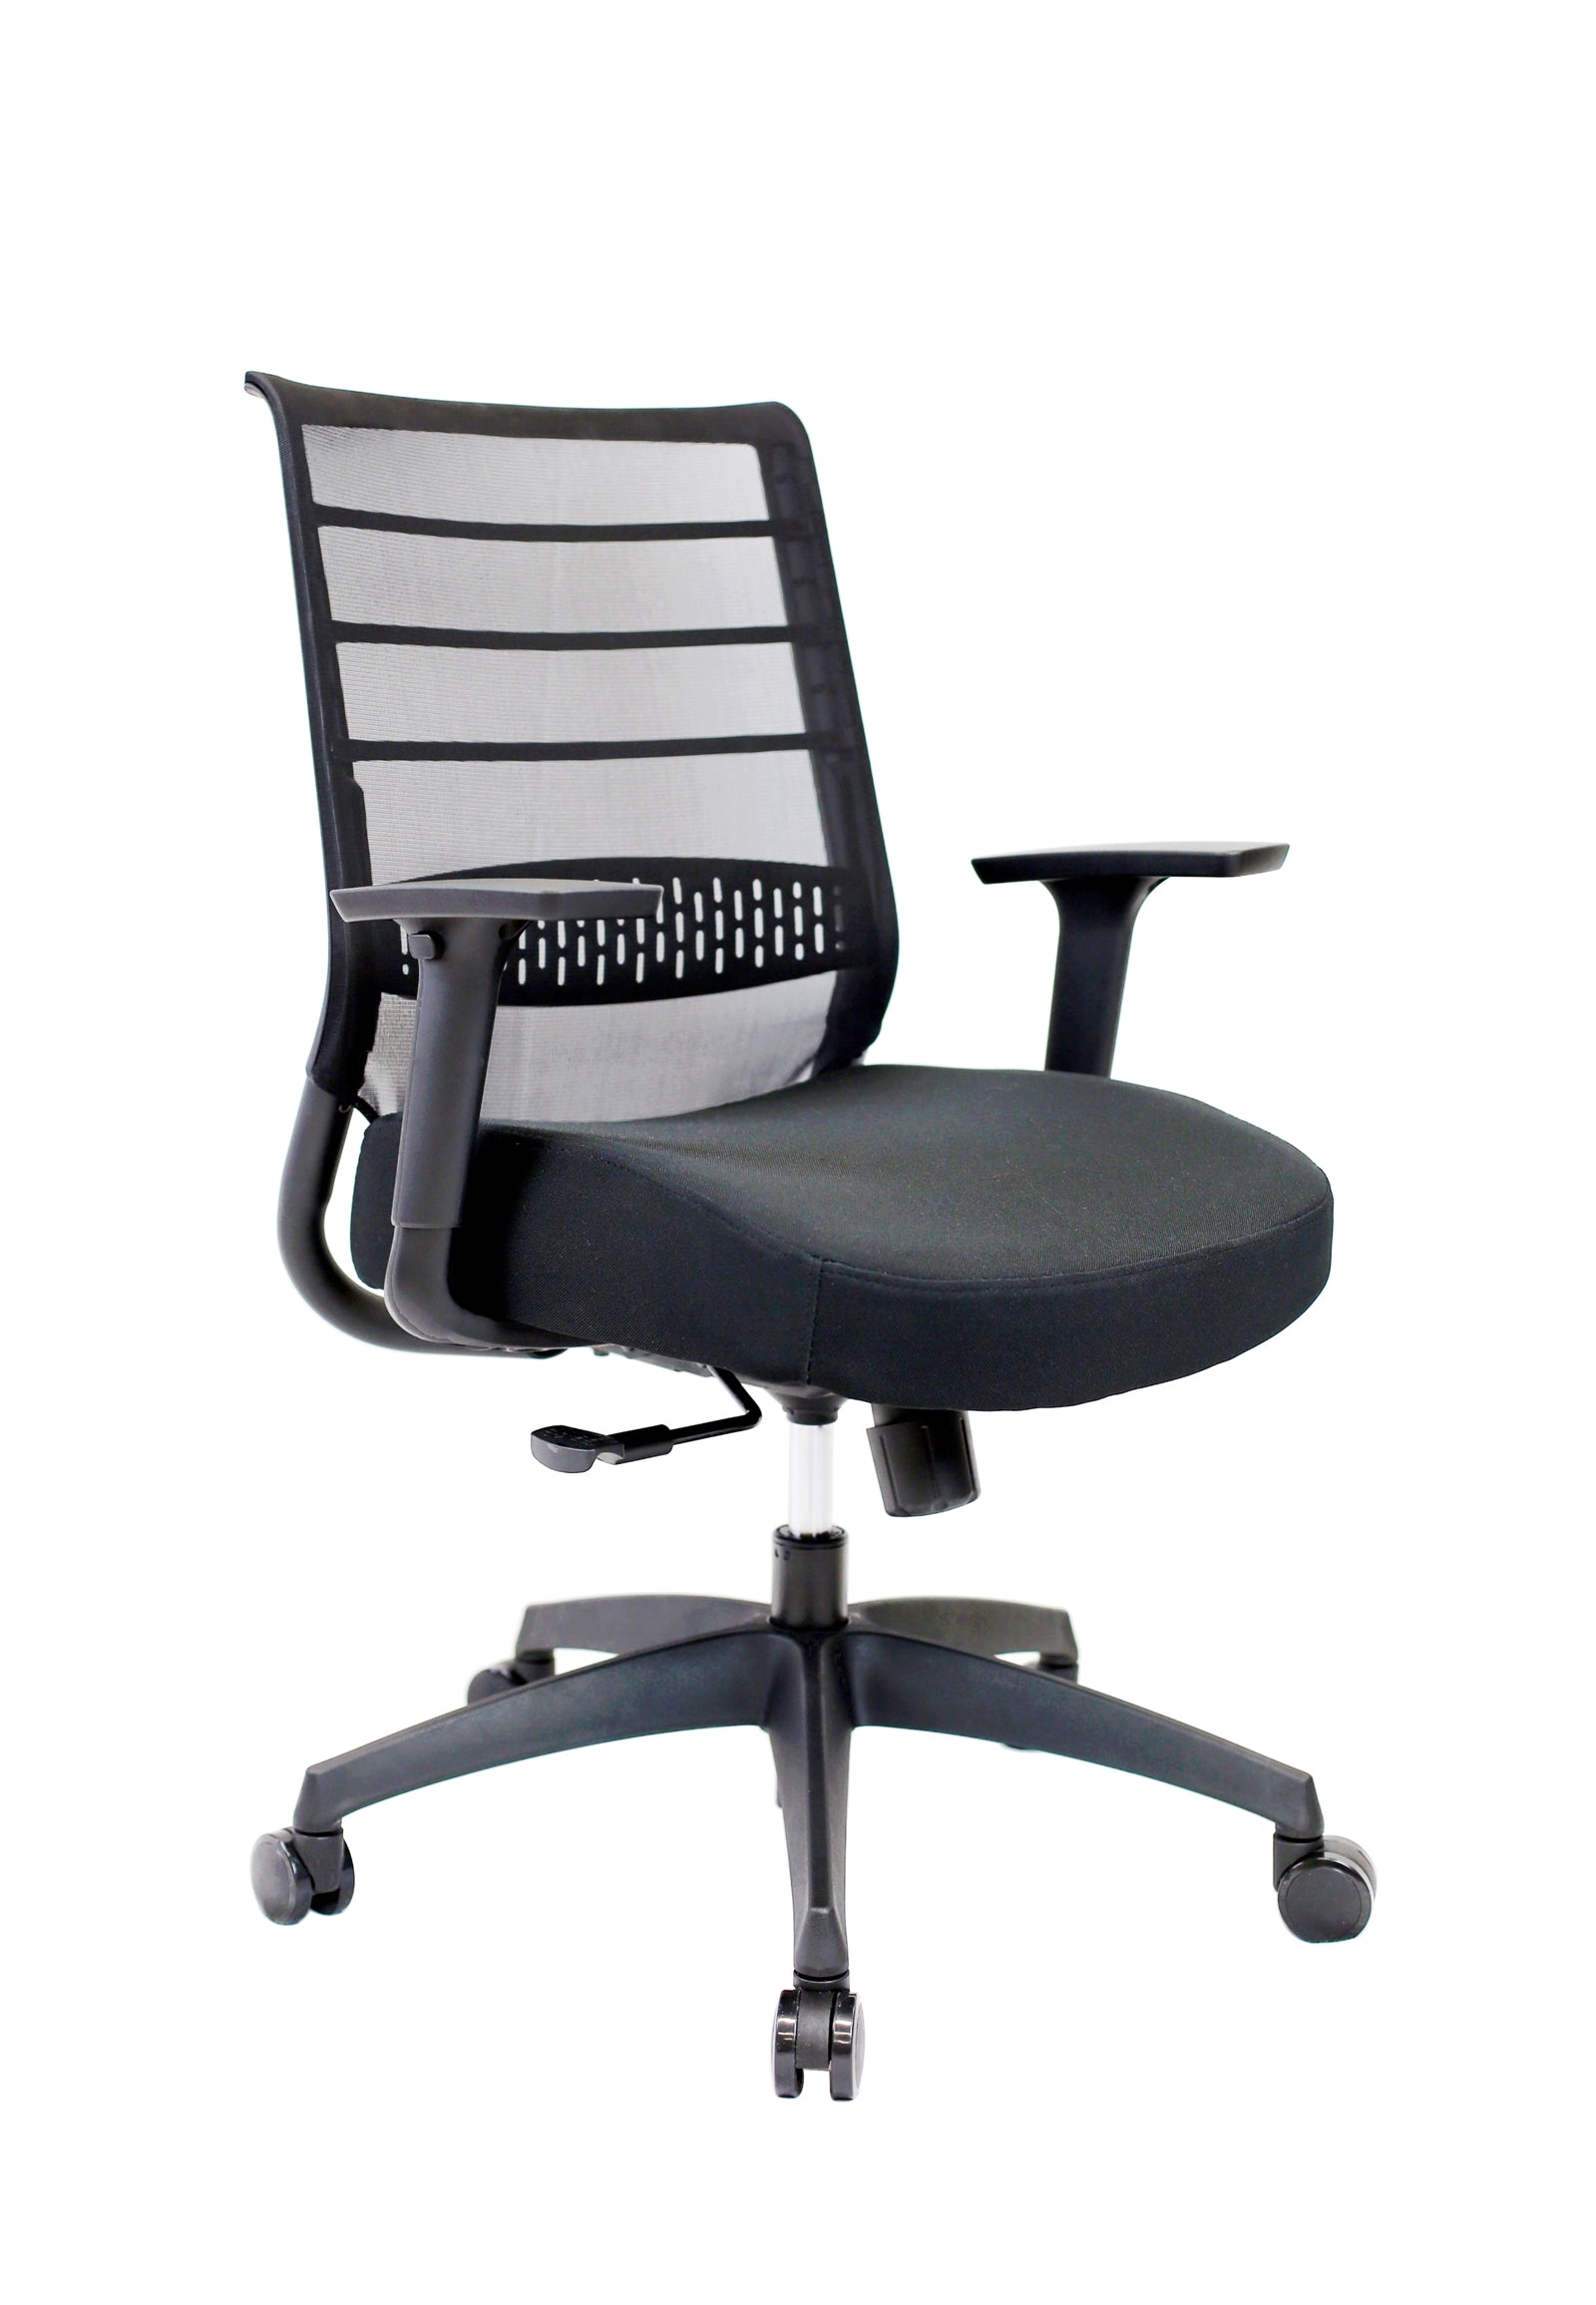 Onyx™ Mesh Chair - Medium Back - KiPP